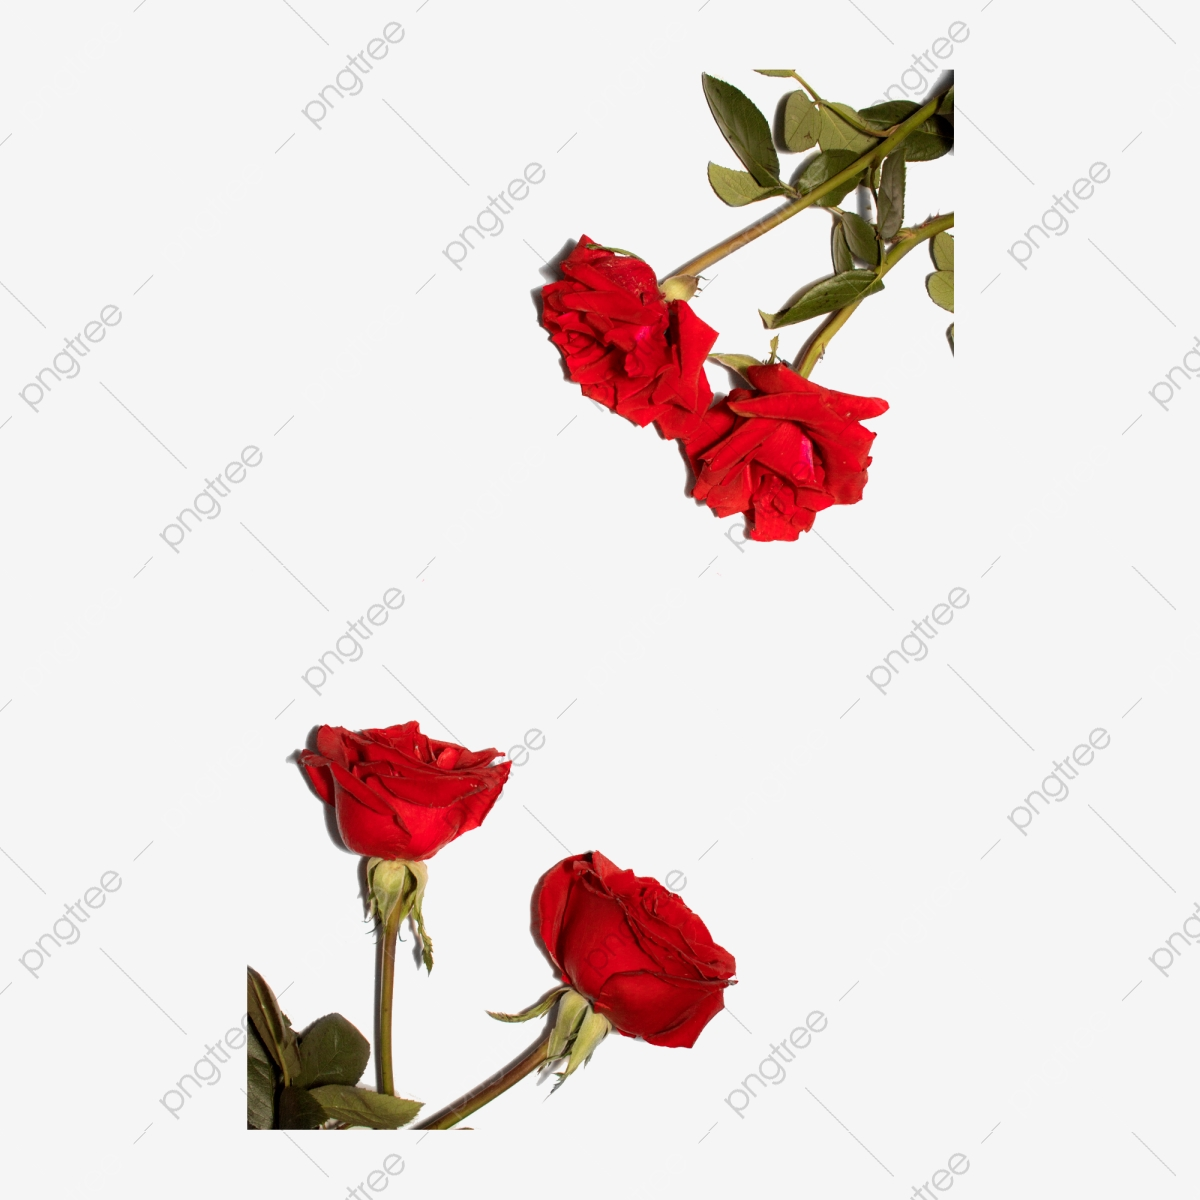 Rose Png Free Valentine Rose Red Rose Png Transparent Clipart Image And Psd File For Free Download